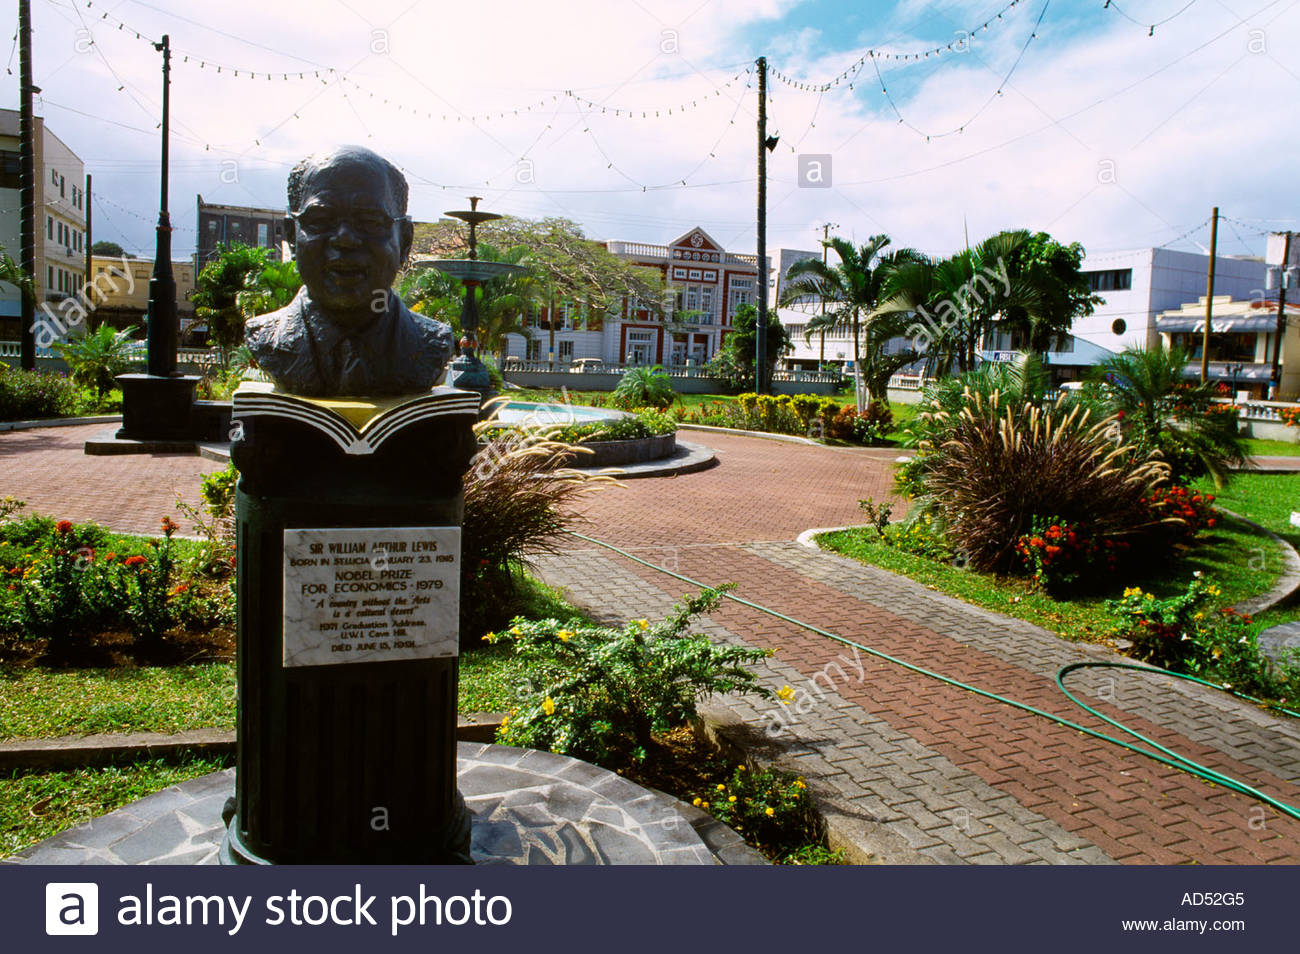 Derek Walcott Square Castries, Castries St Lucia Derek Walcott Square Bust of Sir William Arthur ...